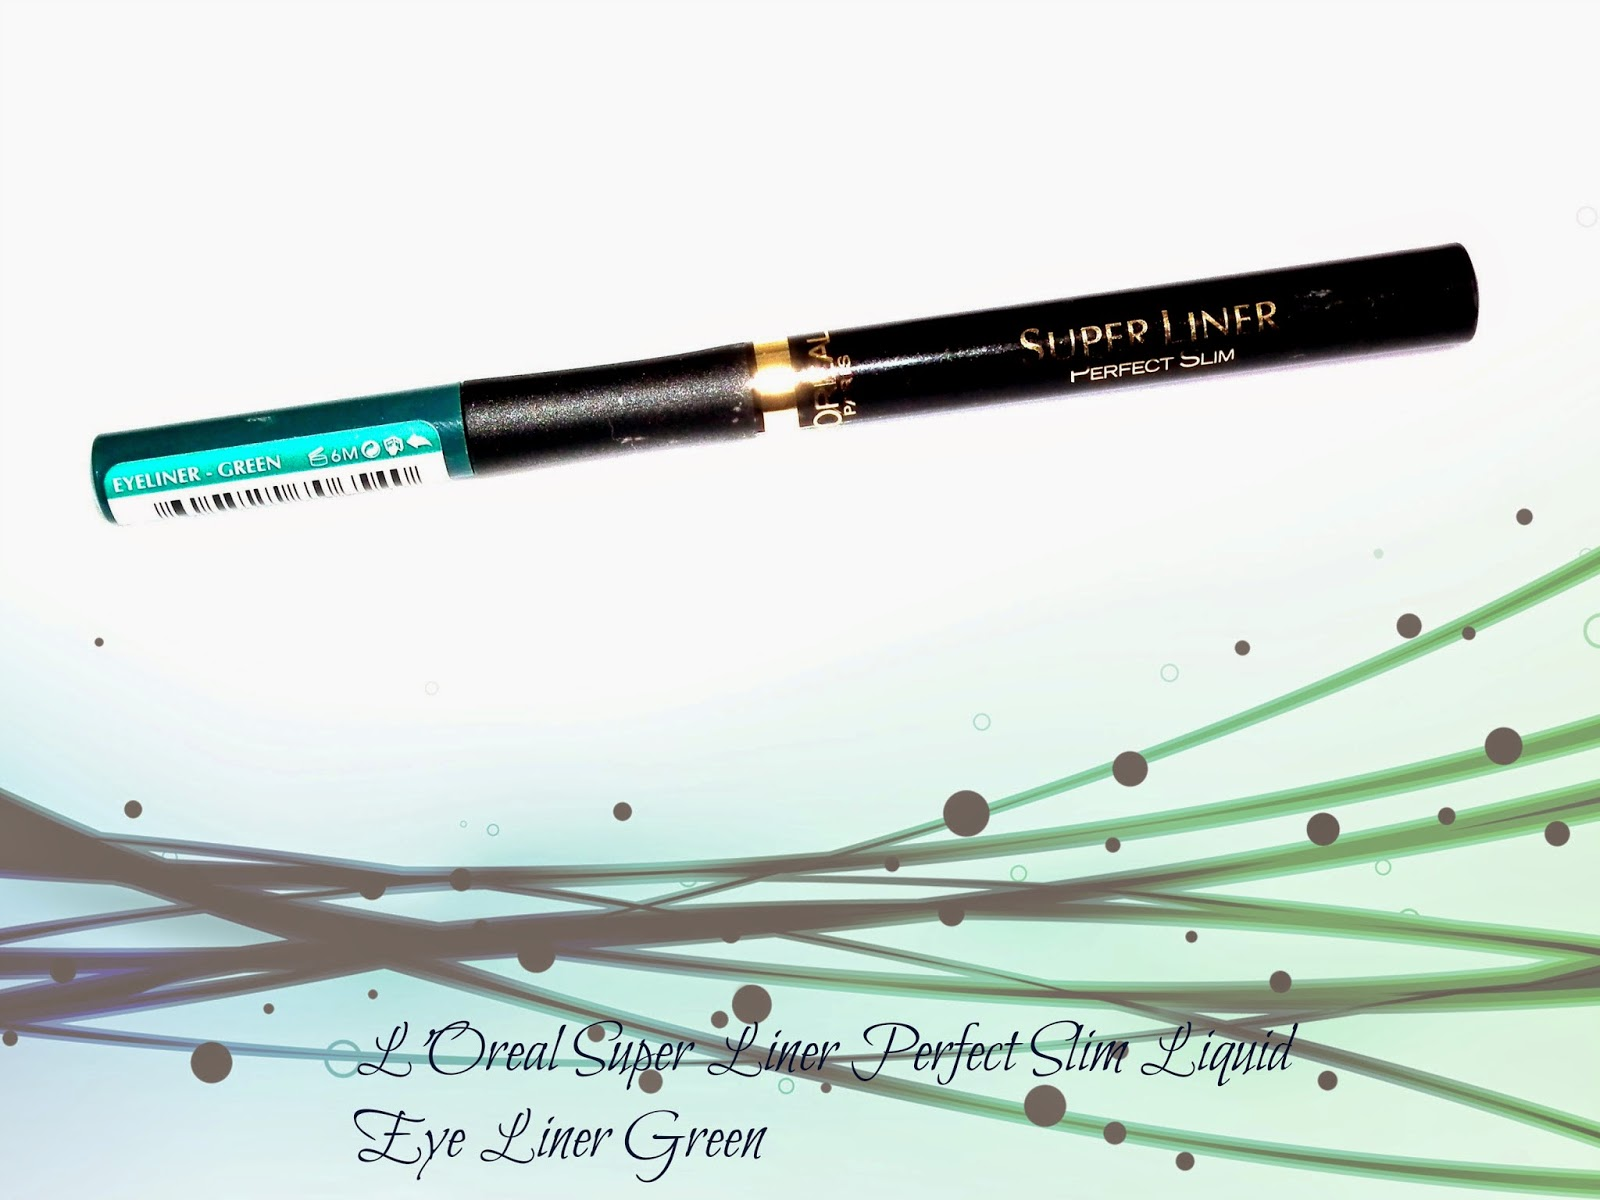 L'Oreal Super Liner Perfect Slim Liquid Eye Liner Green